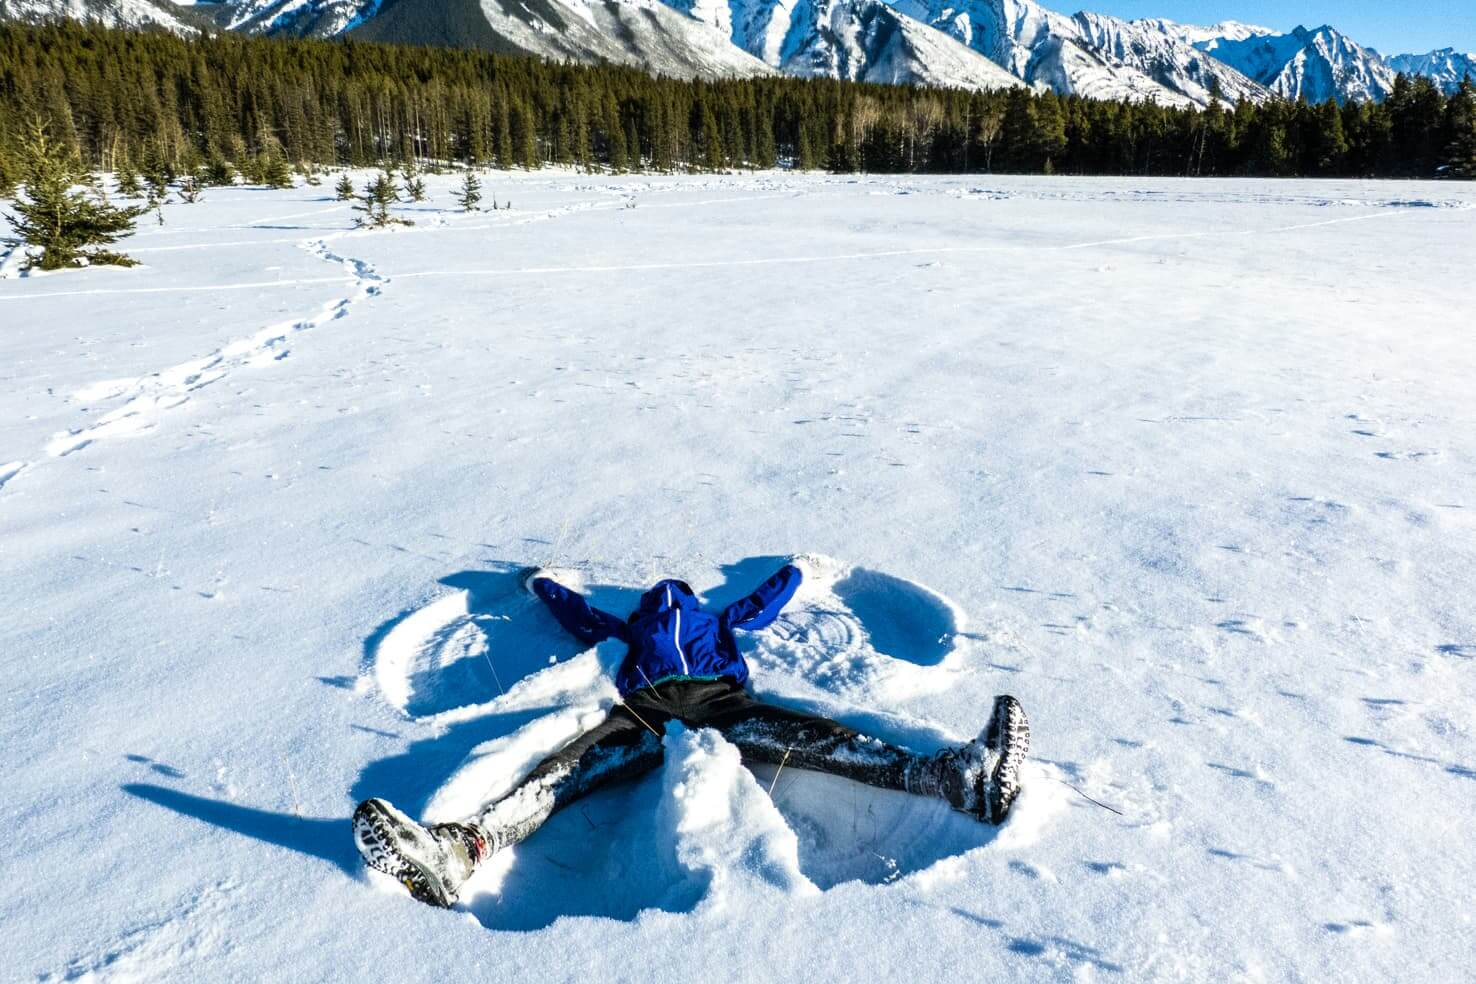 100 best things to do in Banff National Park, Canada - Make a snow angel on the frozen lake